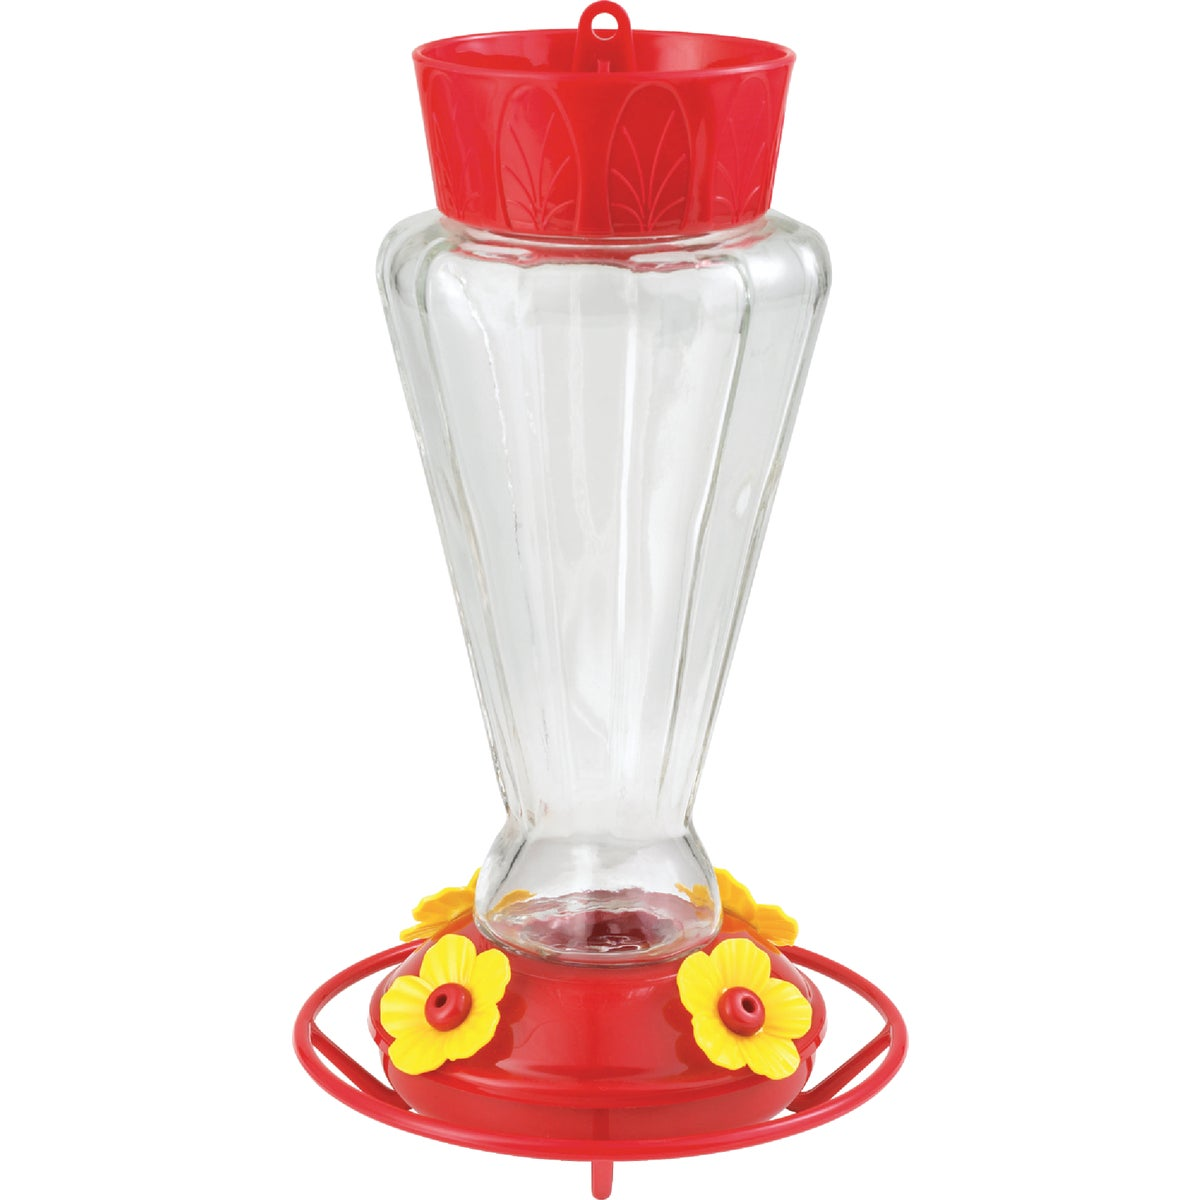 ROYAL HUMMINGBIRD FEEDER - 38135 by Hiatt Mfg